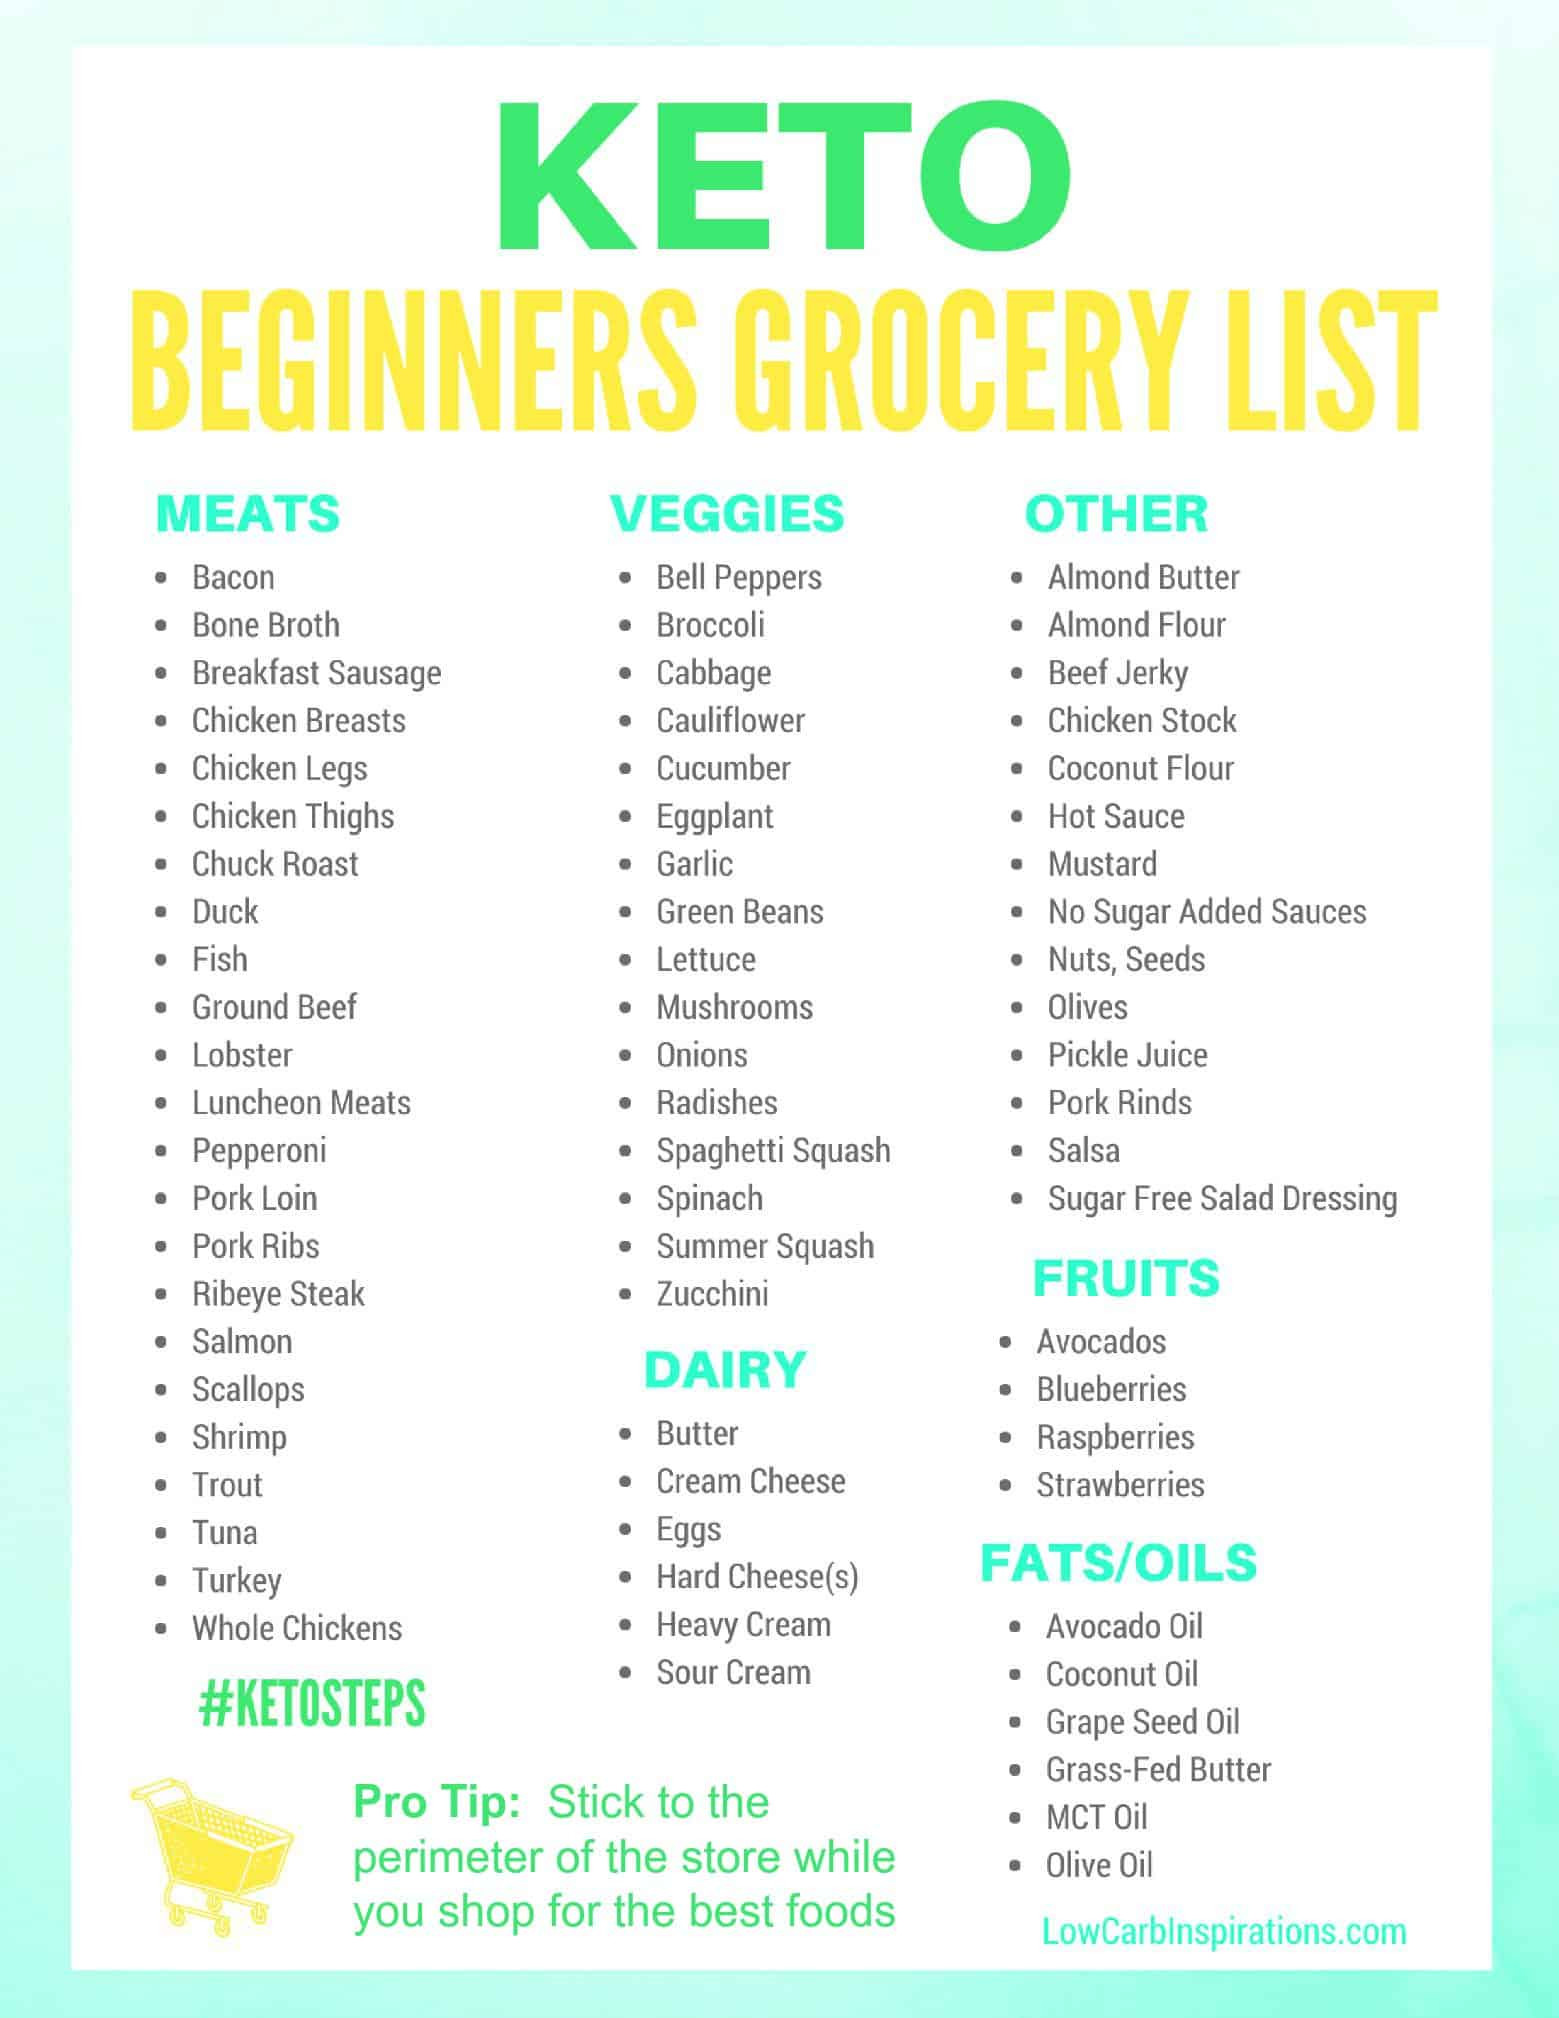 How To Keto Diet For Beginners  Keto Grocery List for Beginners iSaveA2Z